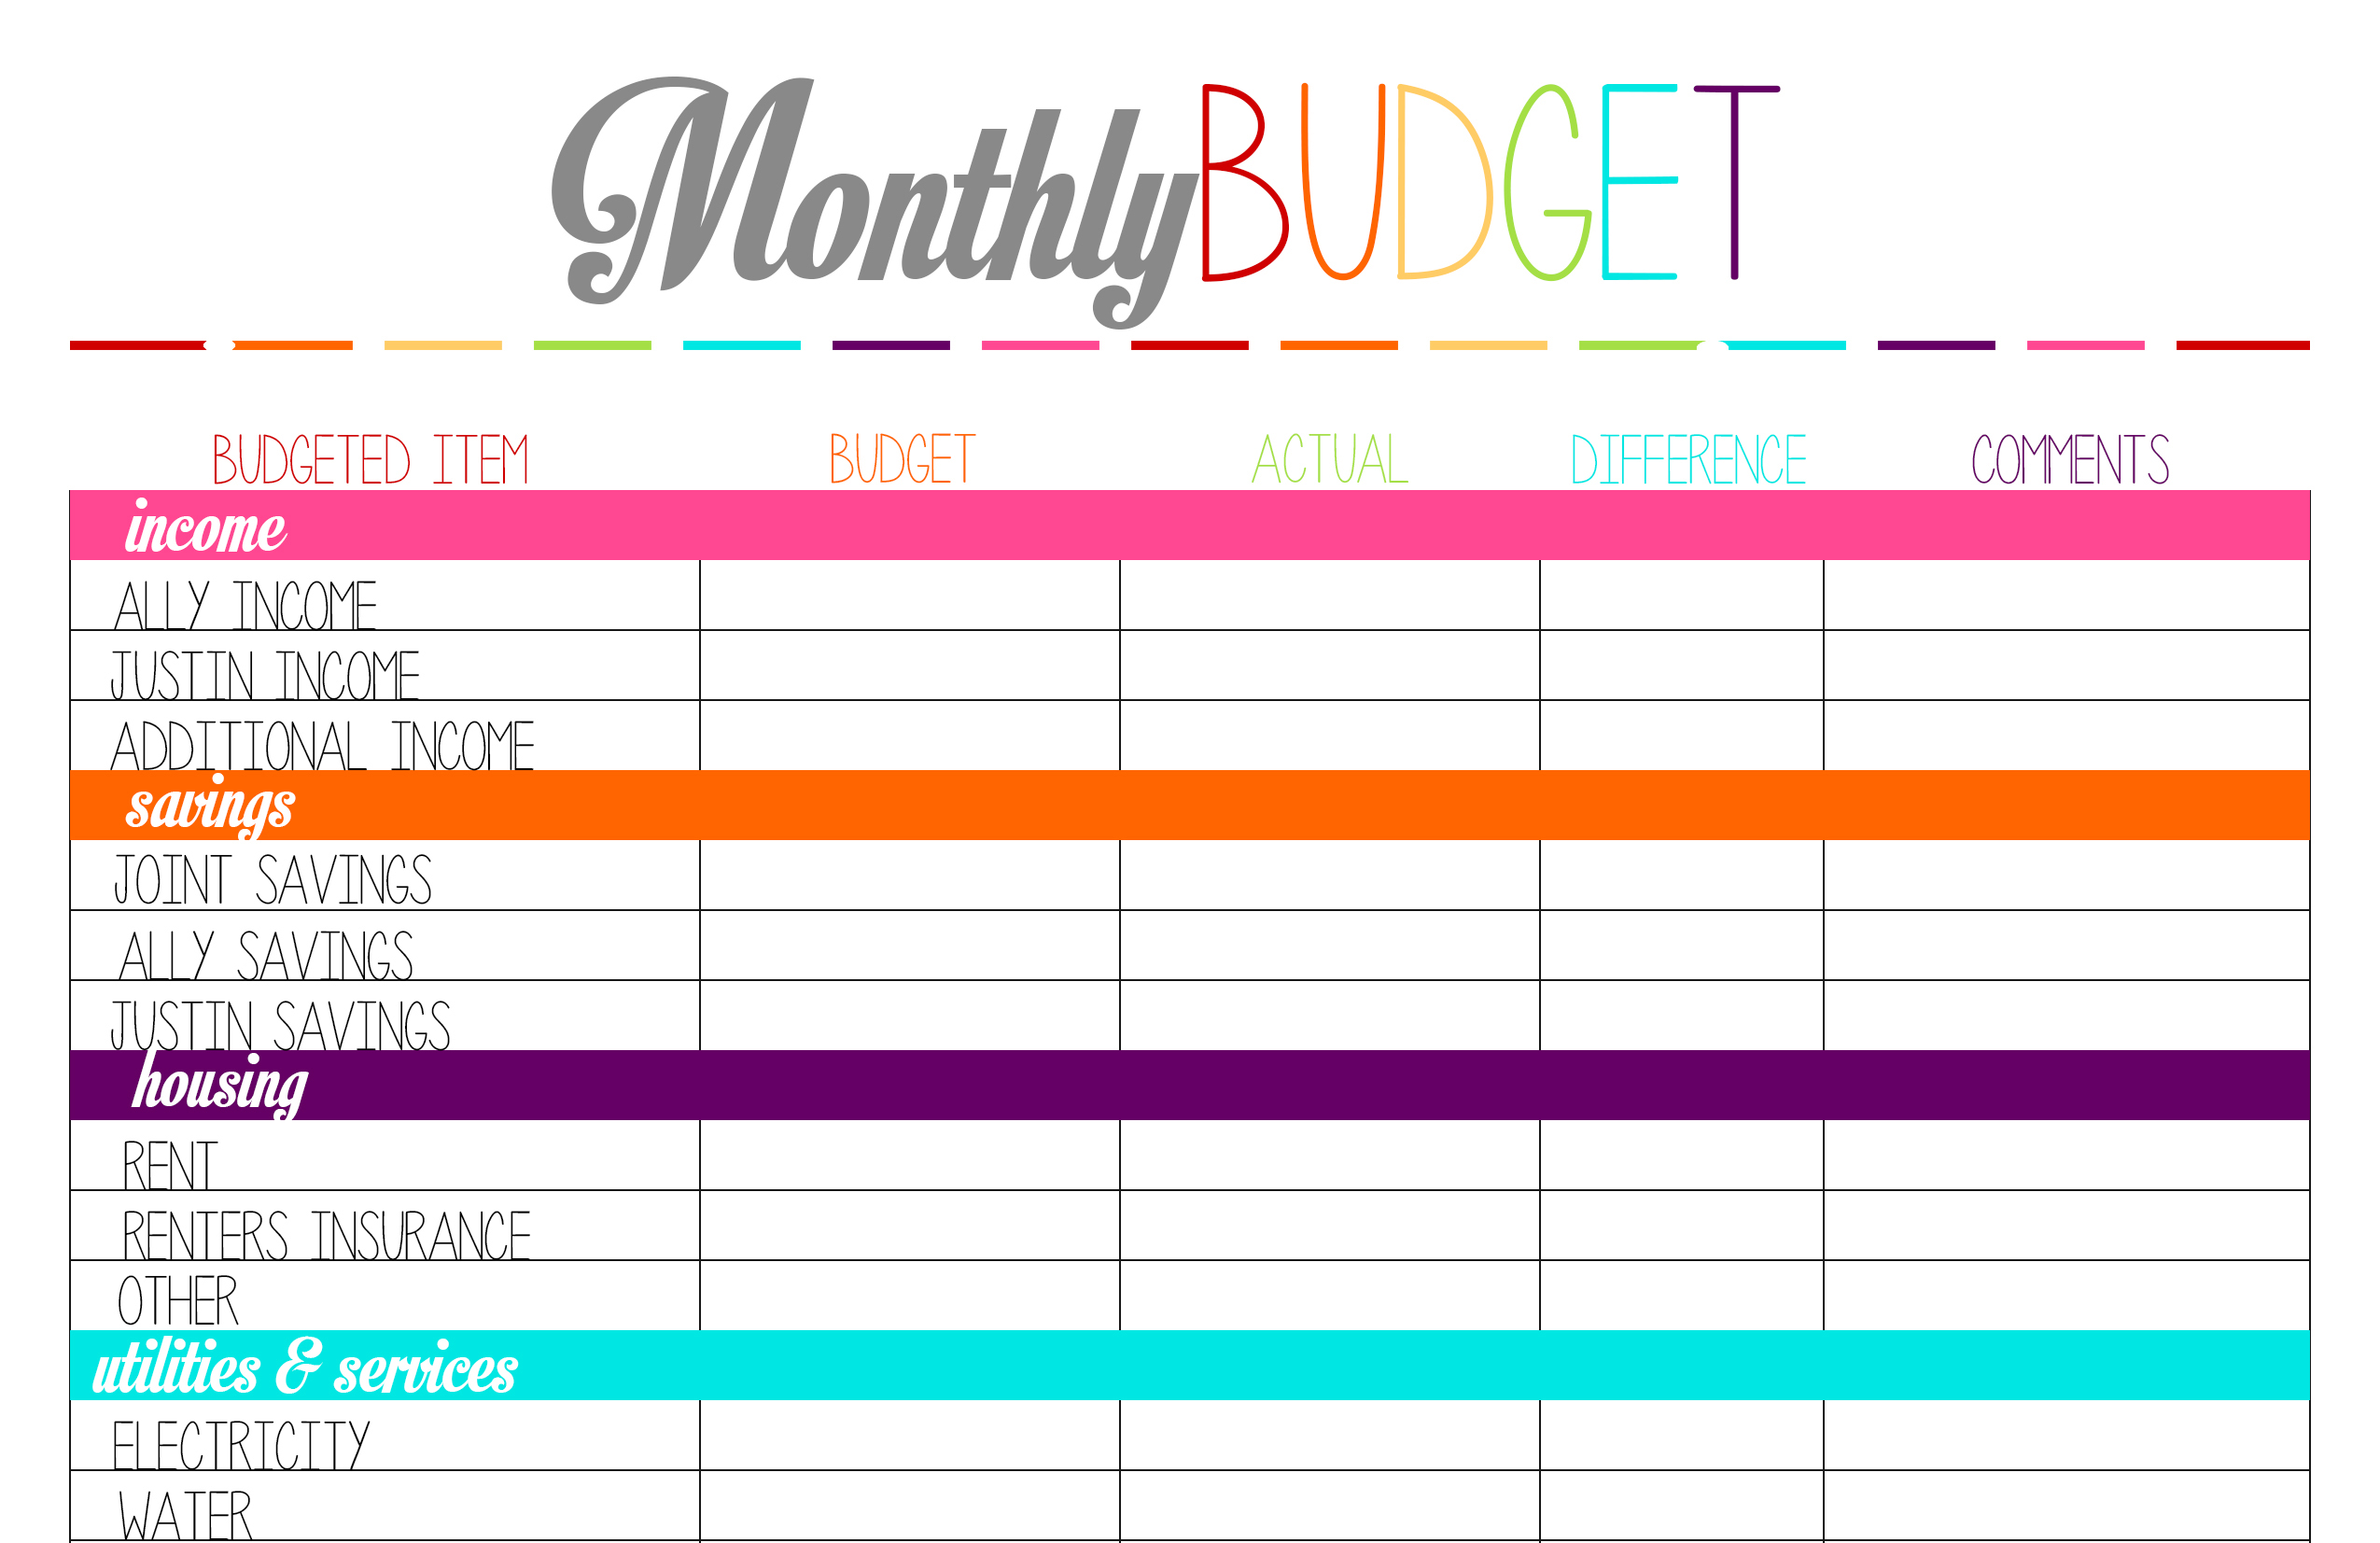 Worksheets Free Printable Monthly Budget Worksheets budget spreadsheet printable kays makehauk co free tuesday planning worksheets ally jean